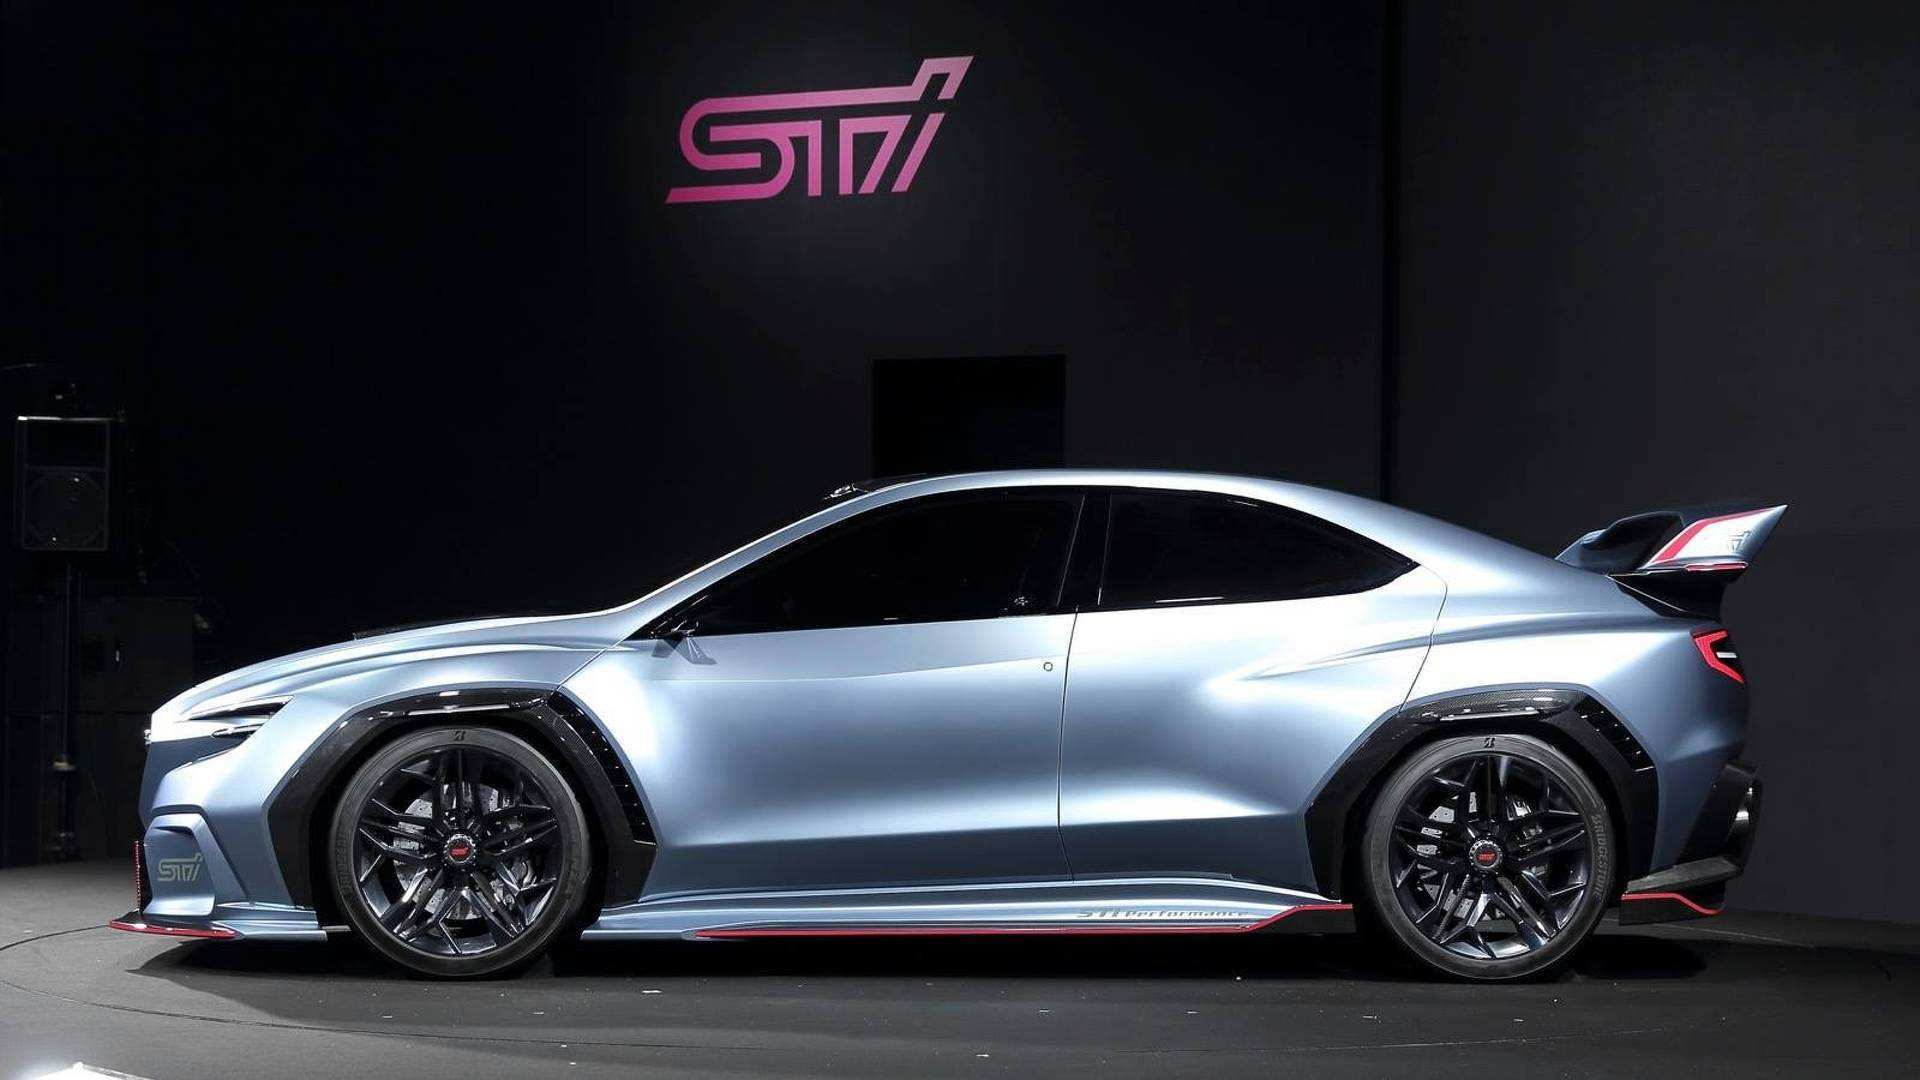 66 Great Sti Subaru 2020 Configurations for Sti Subaru 2020